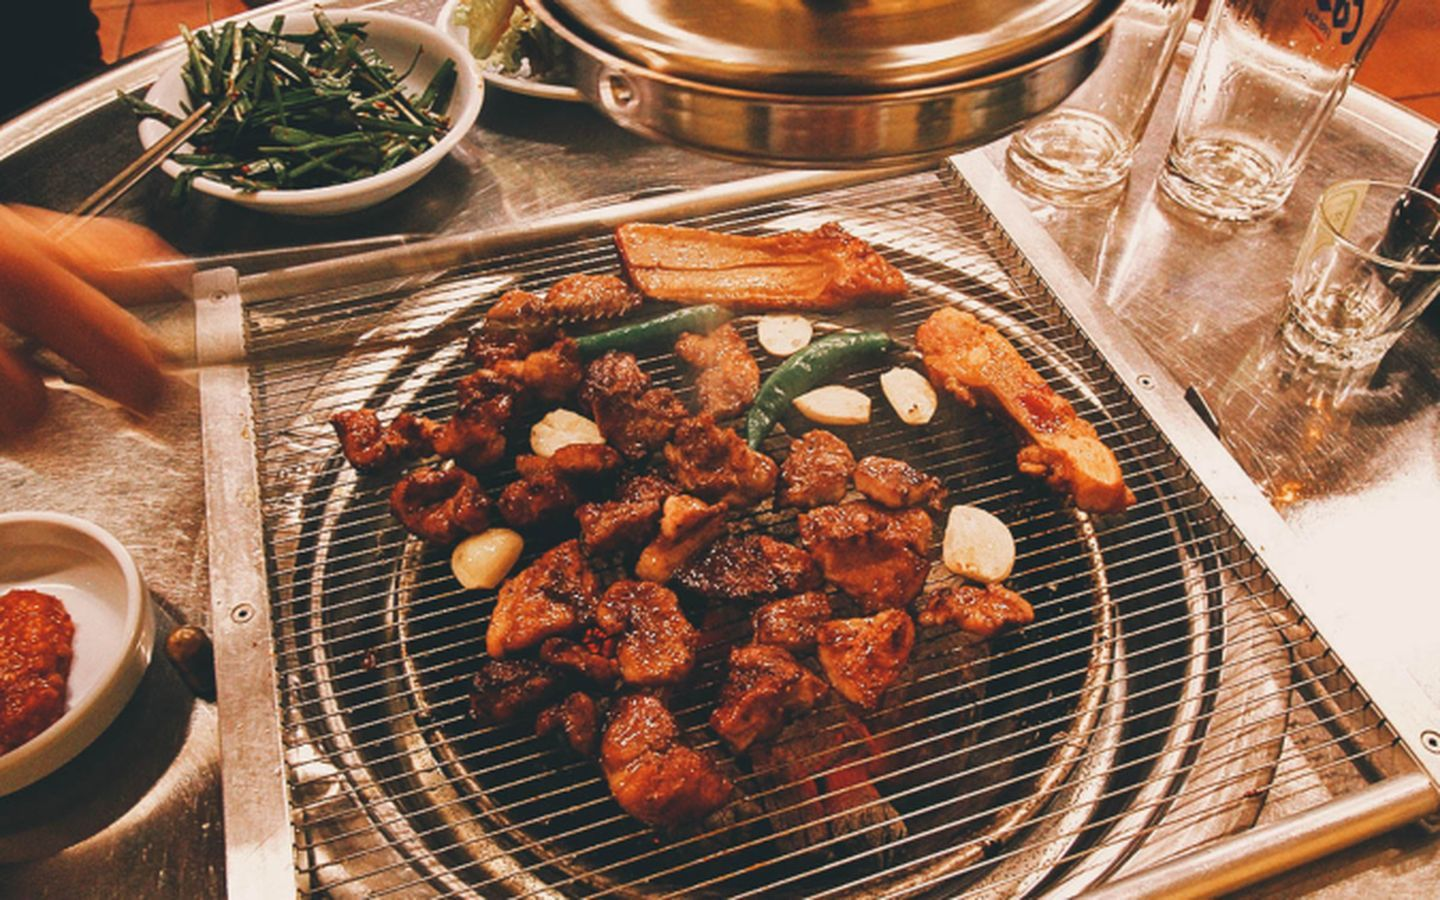 20 Best K Bbq Restaurants In Singapore That Will Make You Feel Like You Re In Korea Food Barbecue Restaurant Nyc Food Tour